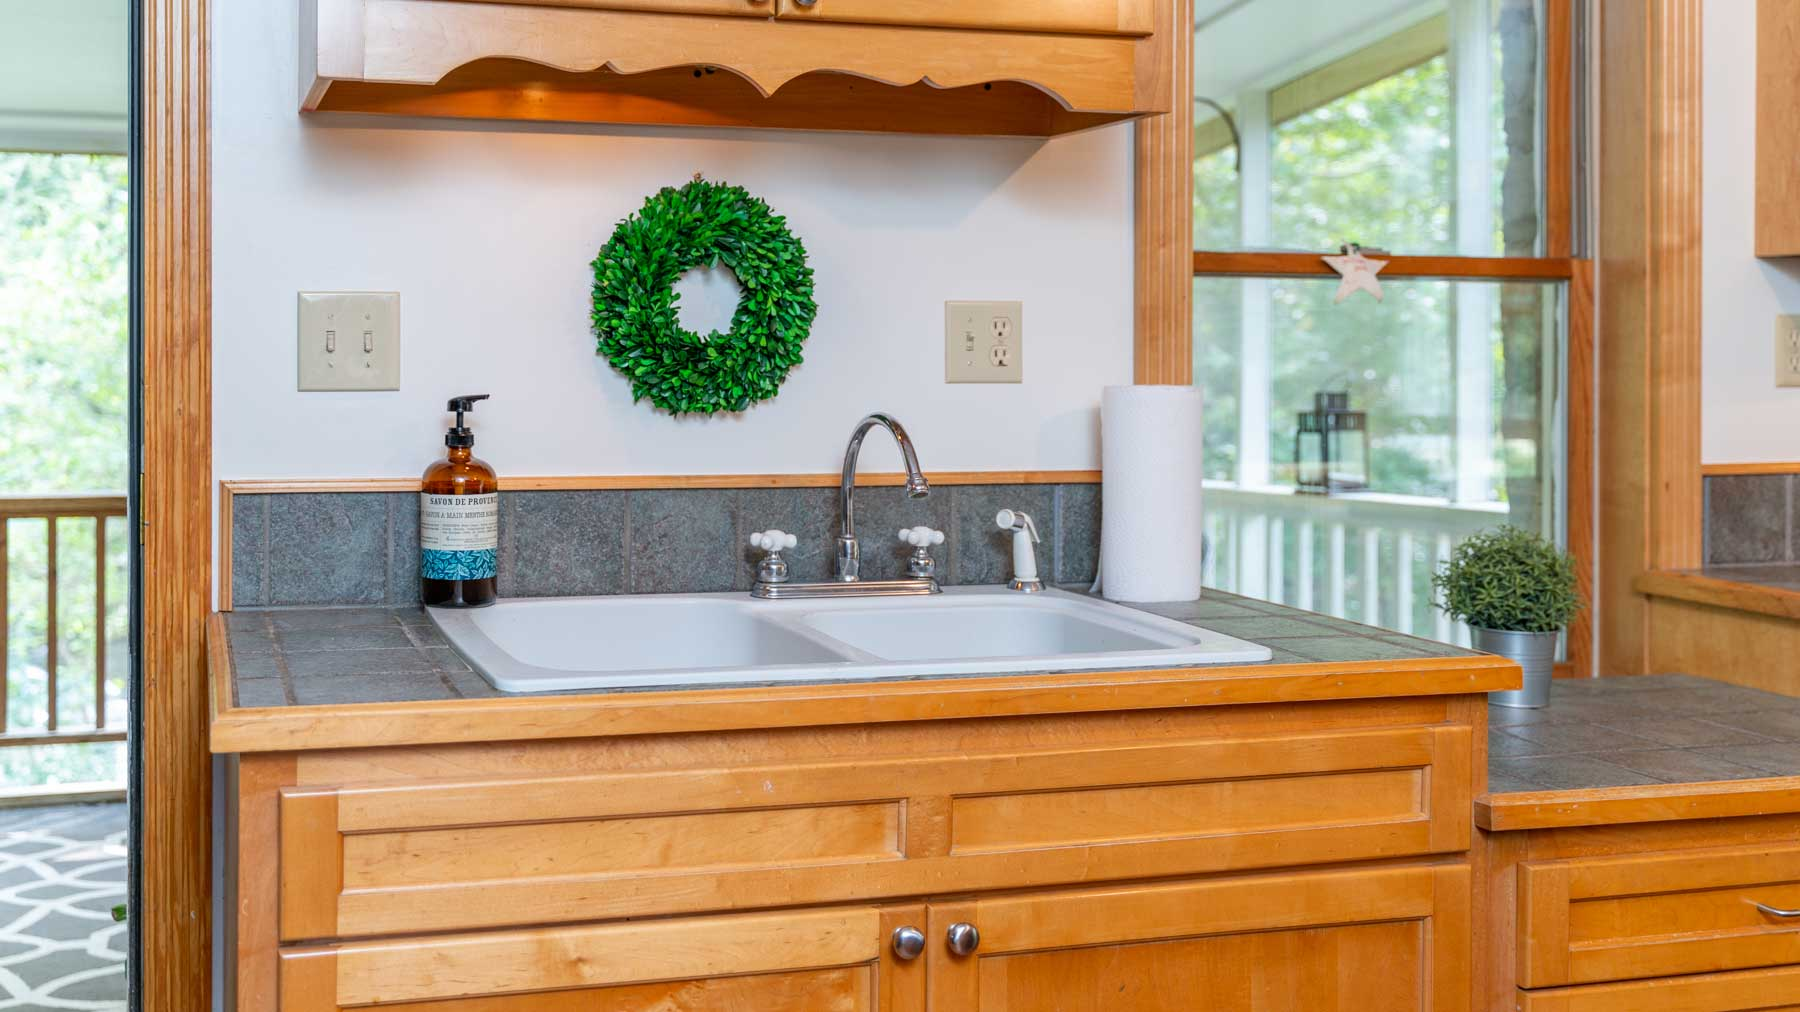 Riverfront retreat kitchen sink